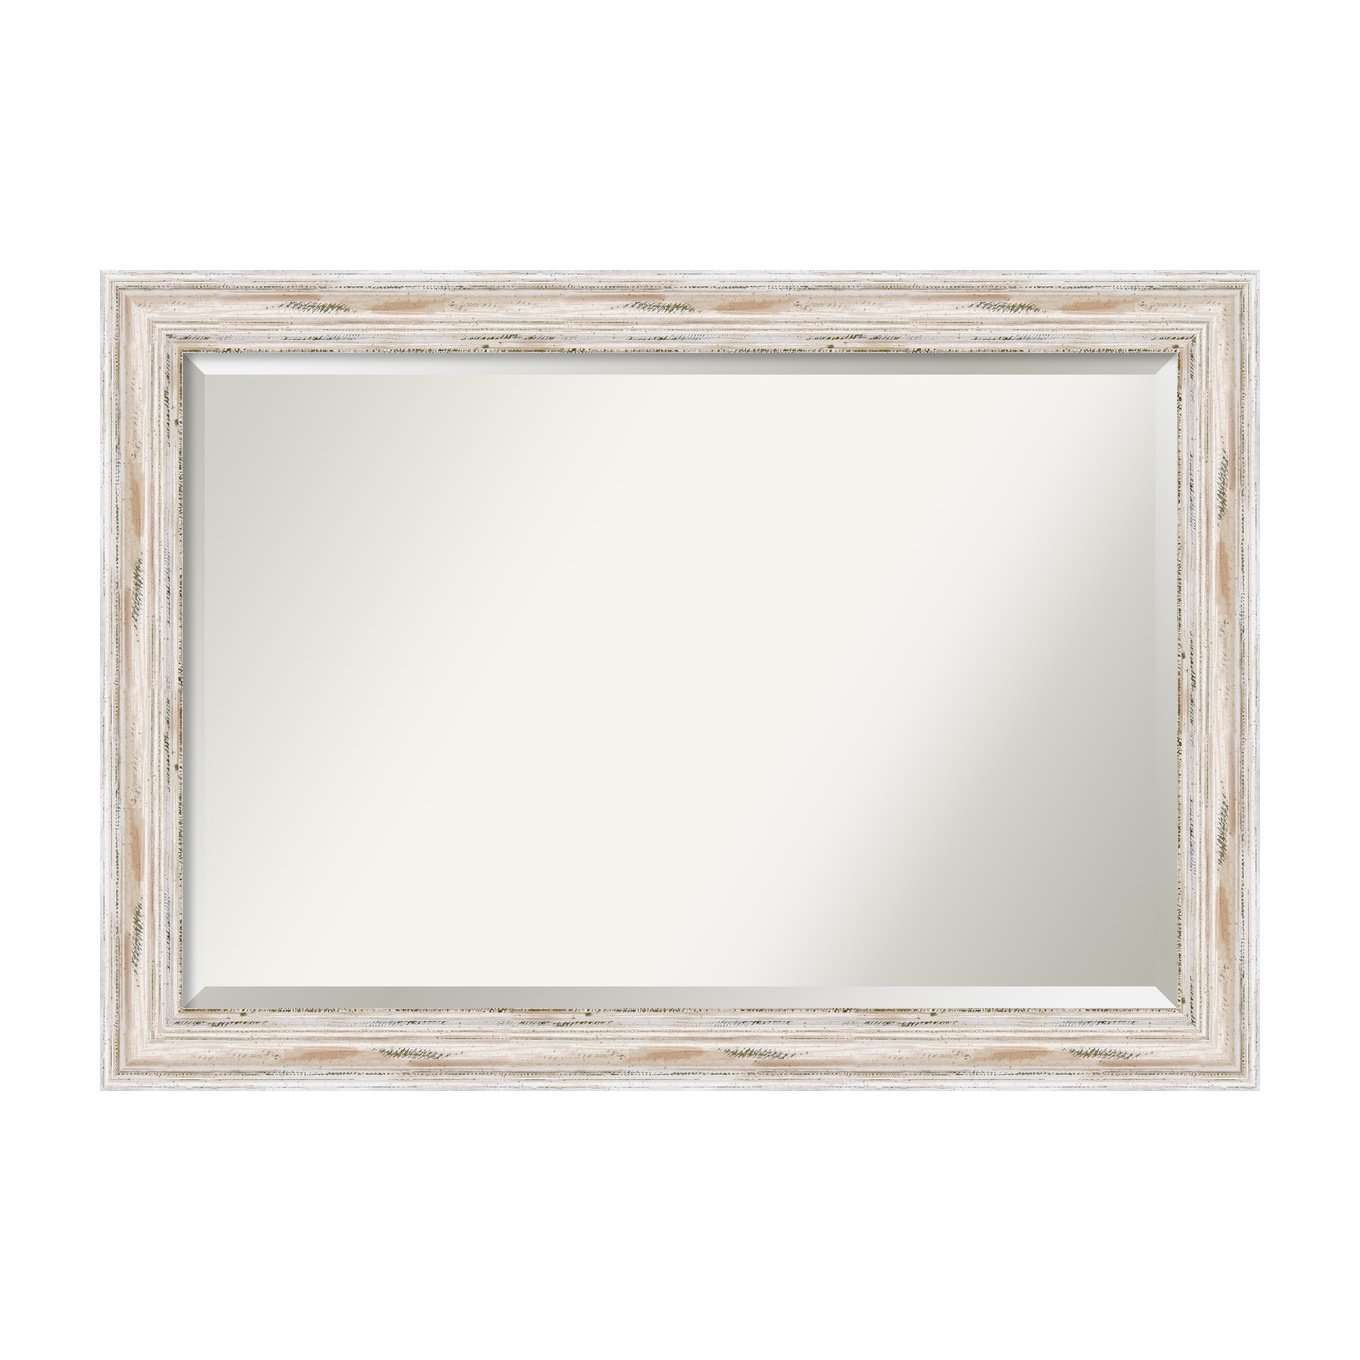 Amanti Art Alexandria White Wash Bathroom Mirror Medium Large, Large-23 x 29